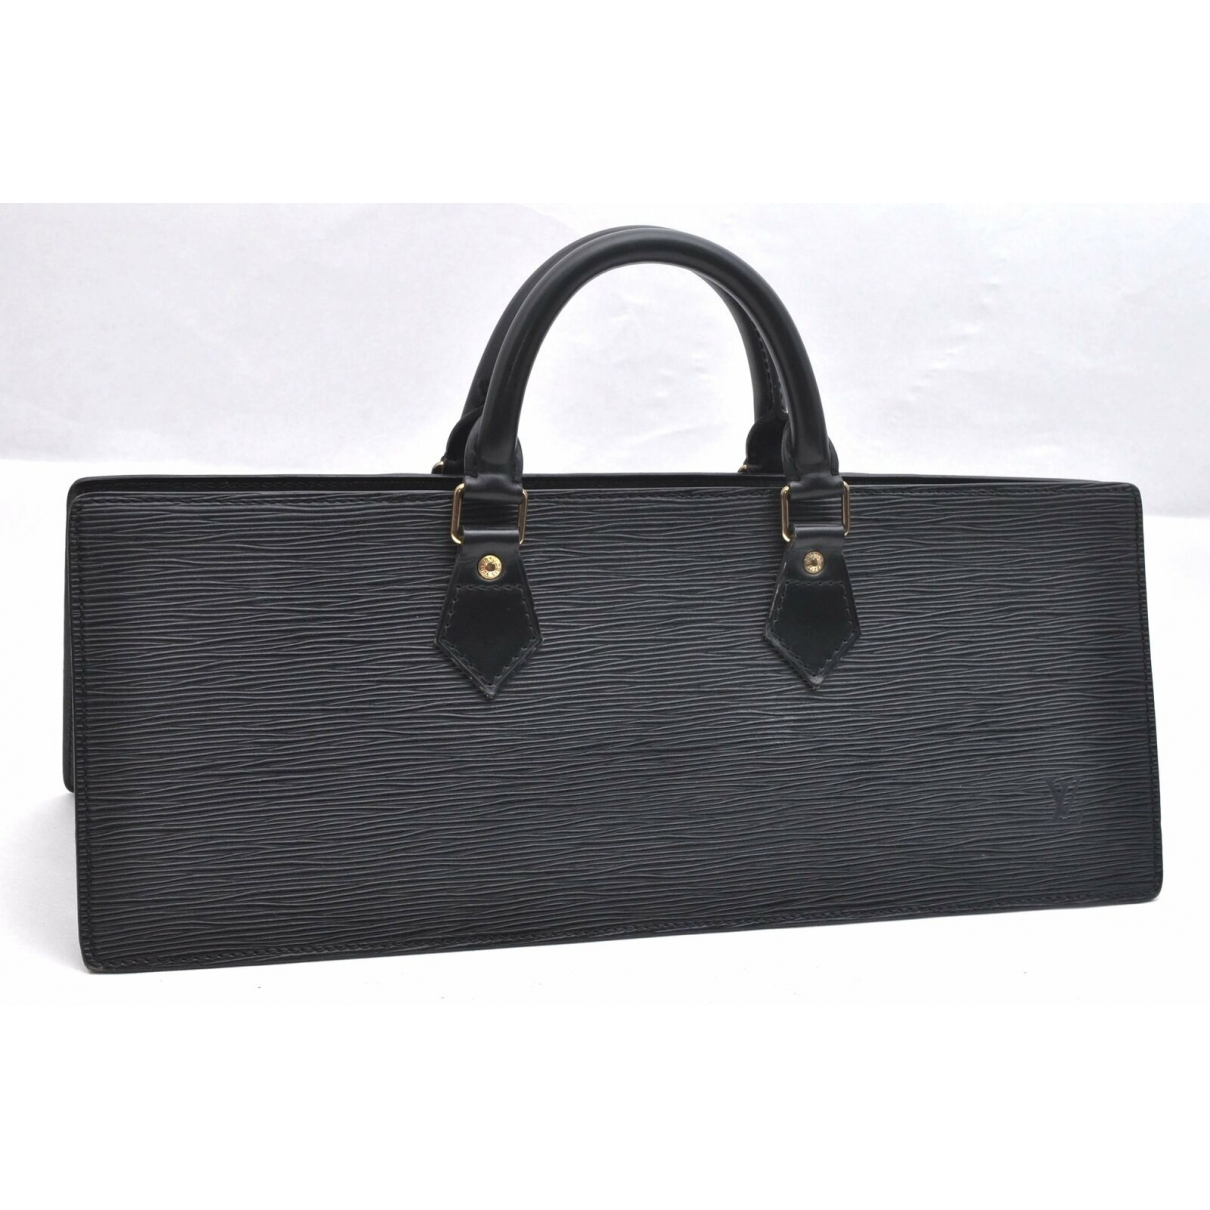 Louis Vuitton \N Black Leather handbag for Women \N